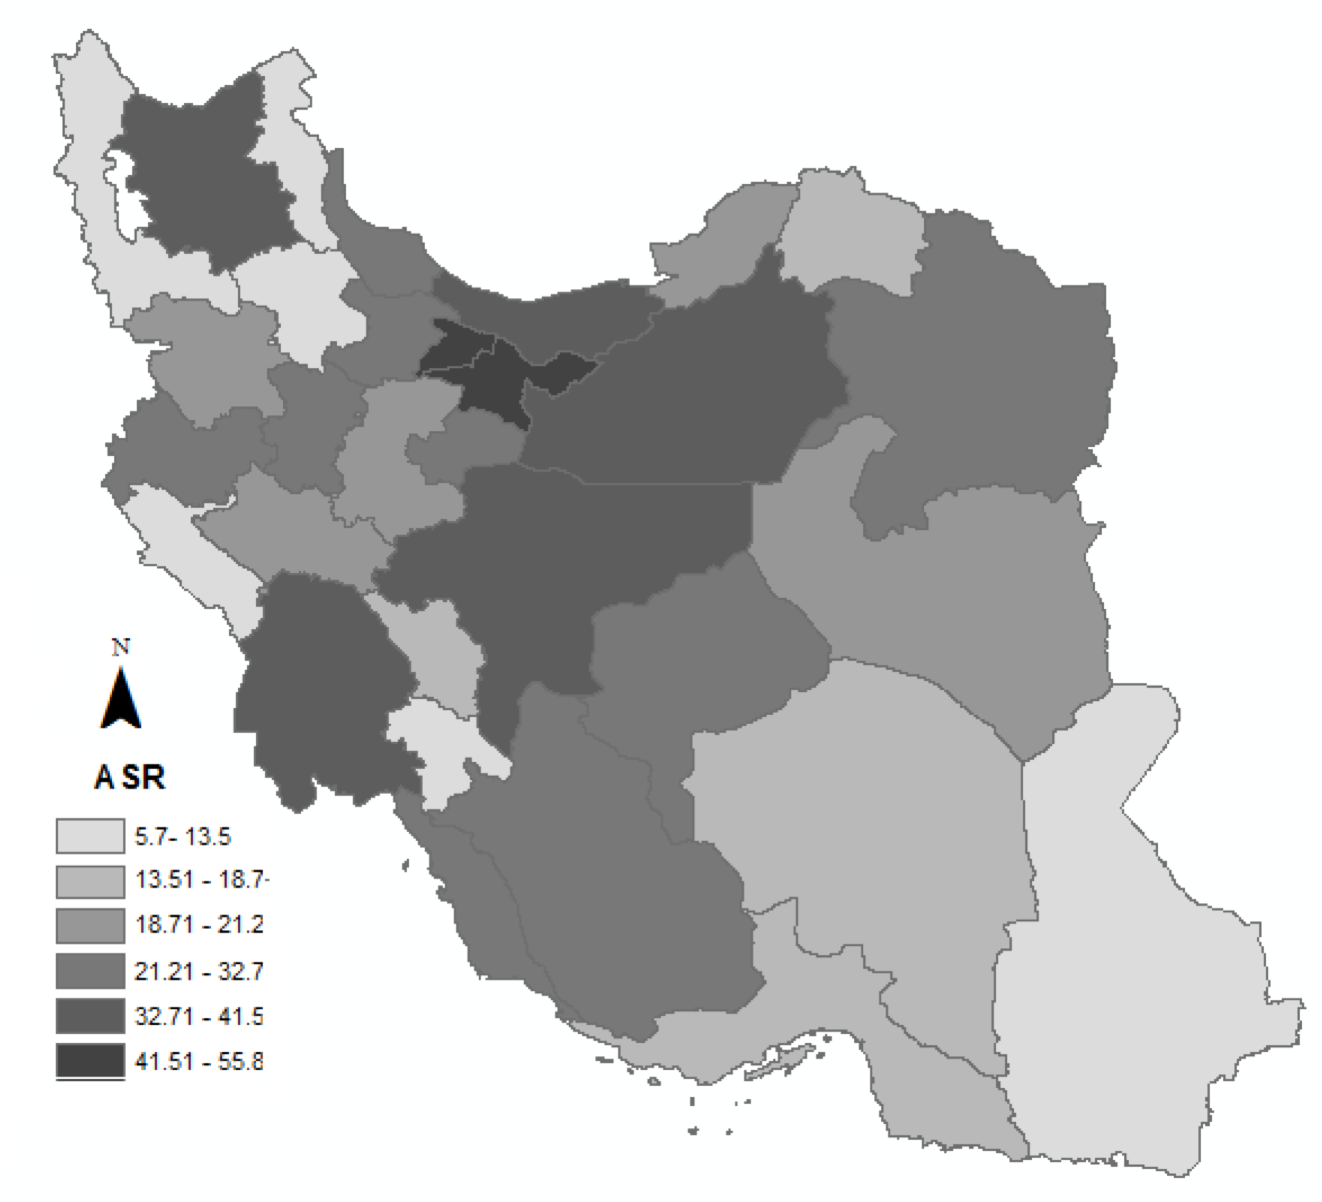 Figure 1 The geographic distribution of age specific rate (ASR) of breast cancer for females in Iran